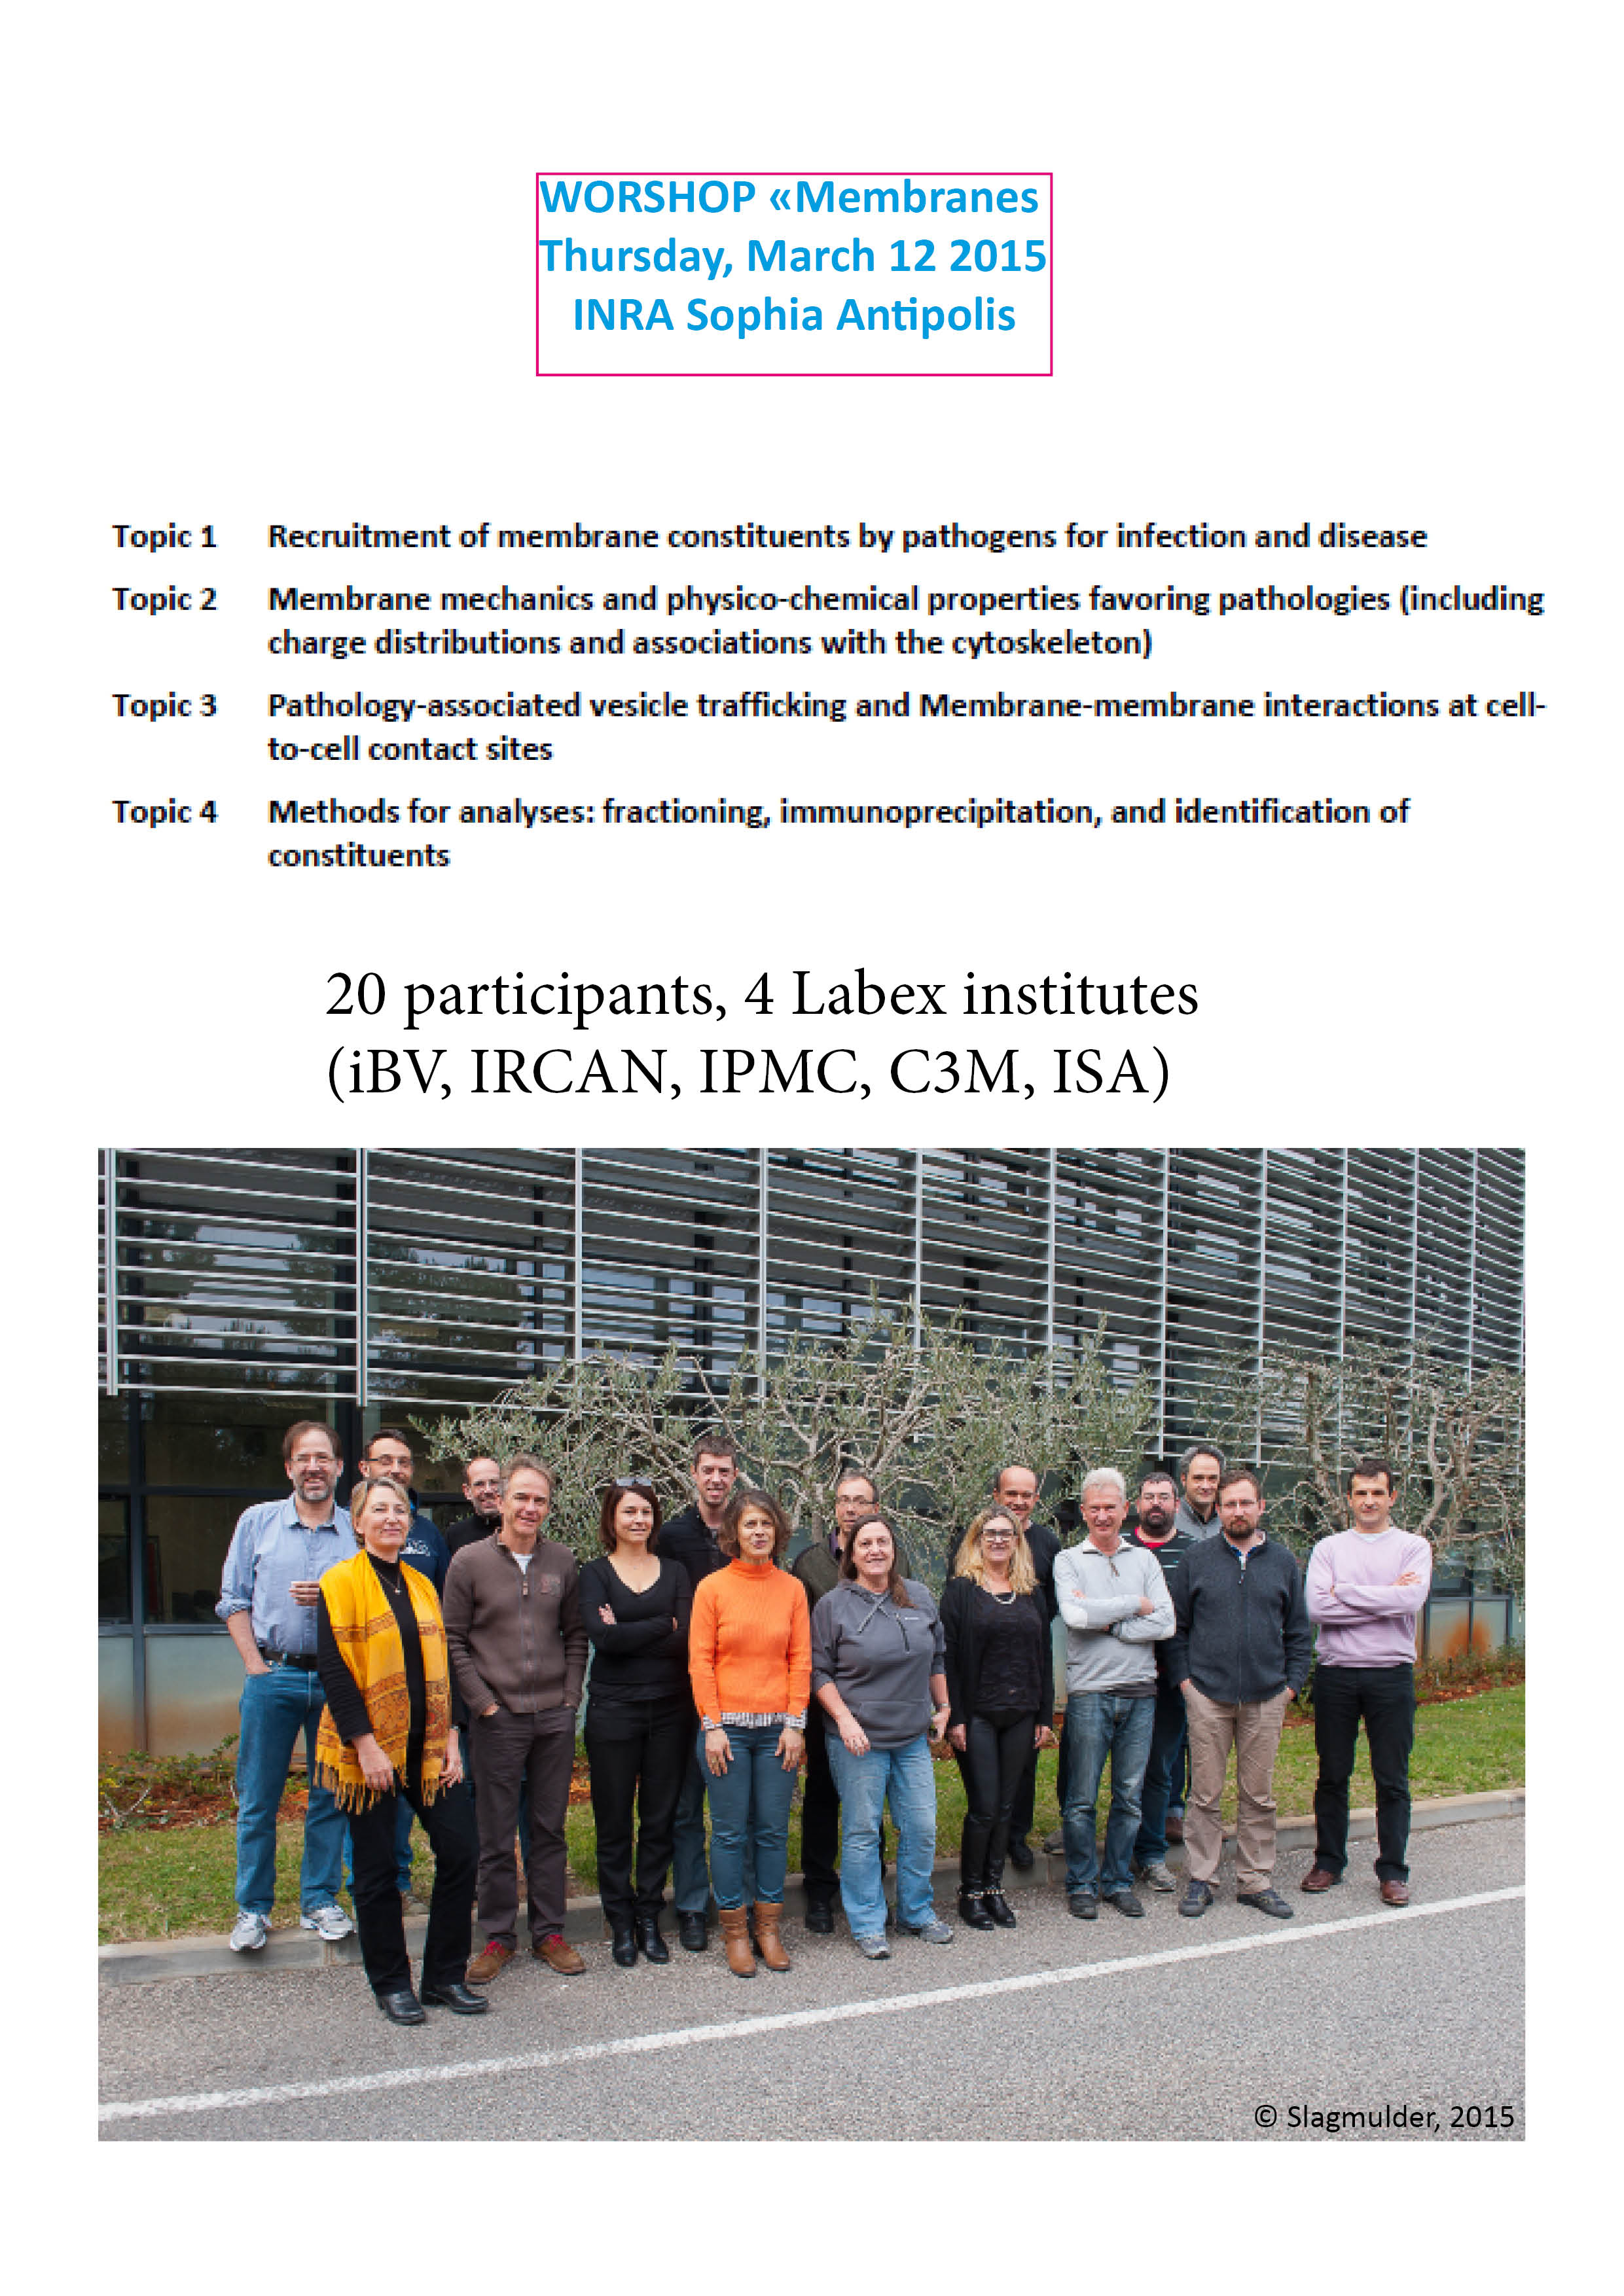 Workshop on Membranes